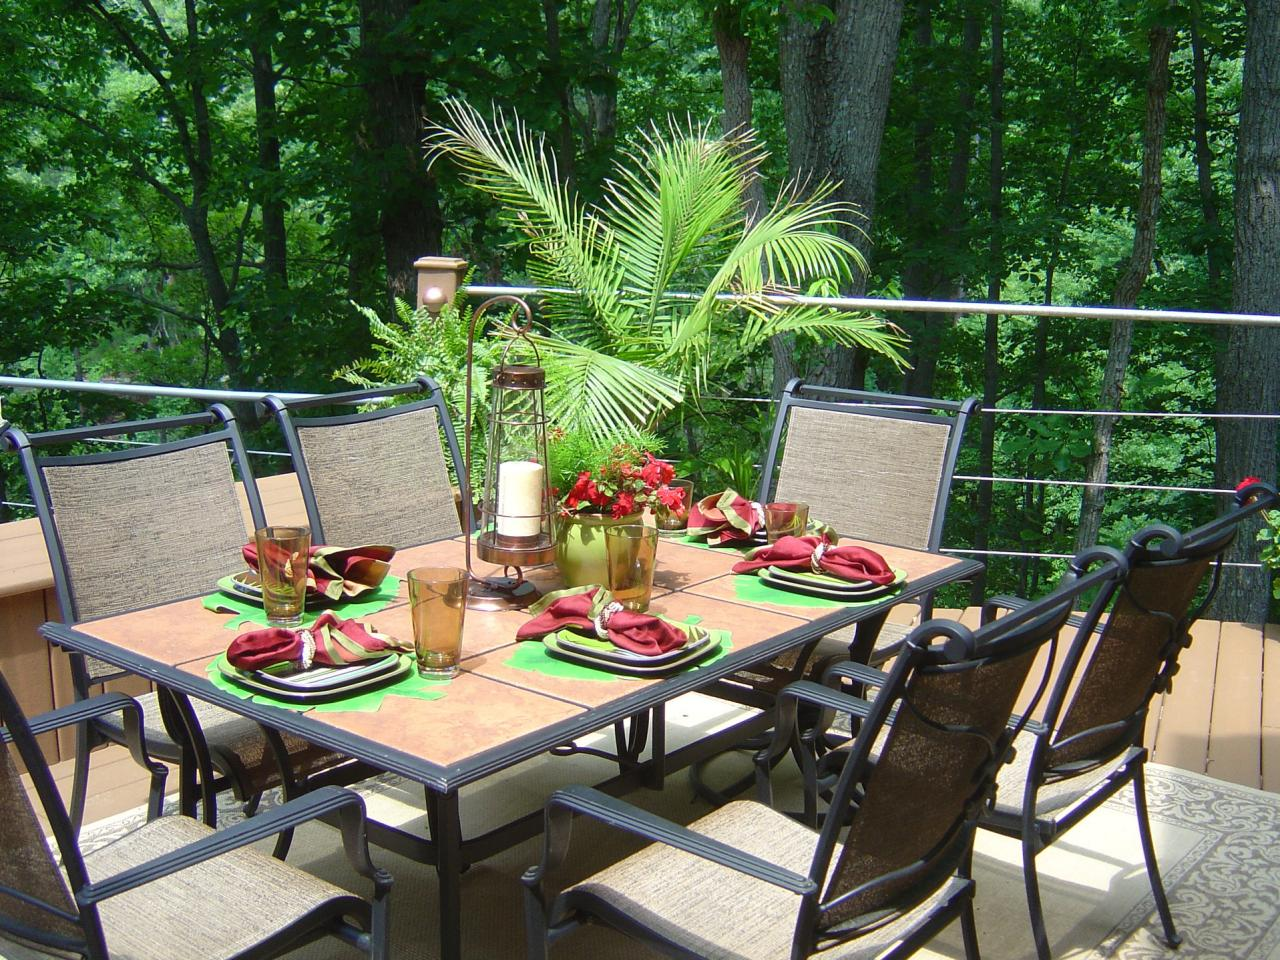 Outdoor entertaining tips for summer hgtv for Outdoor patio accessories